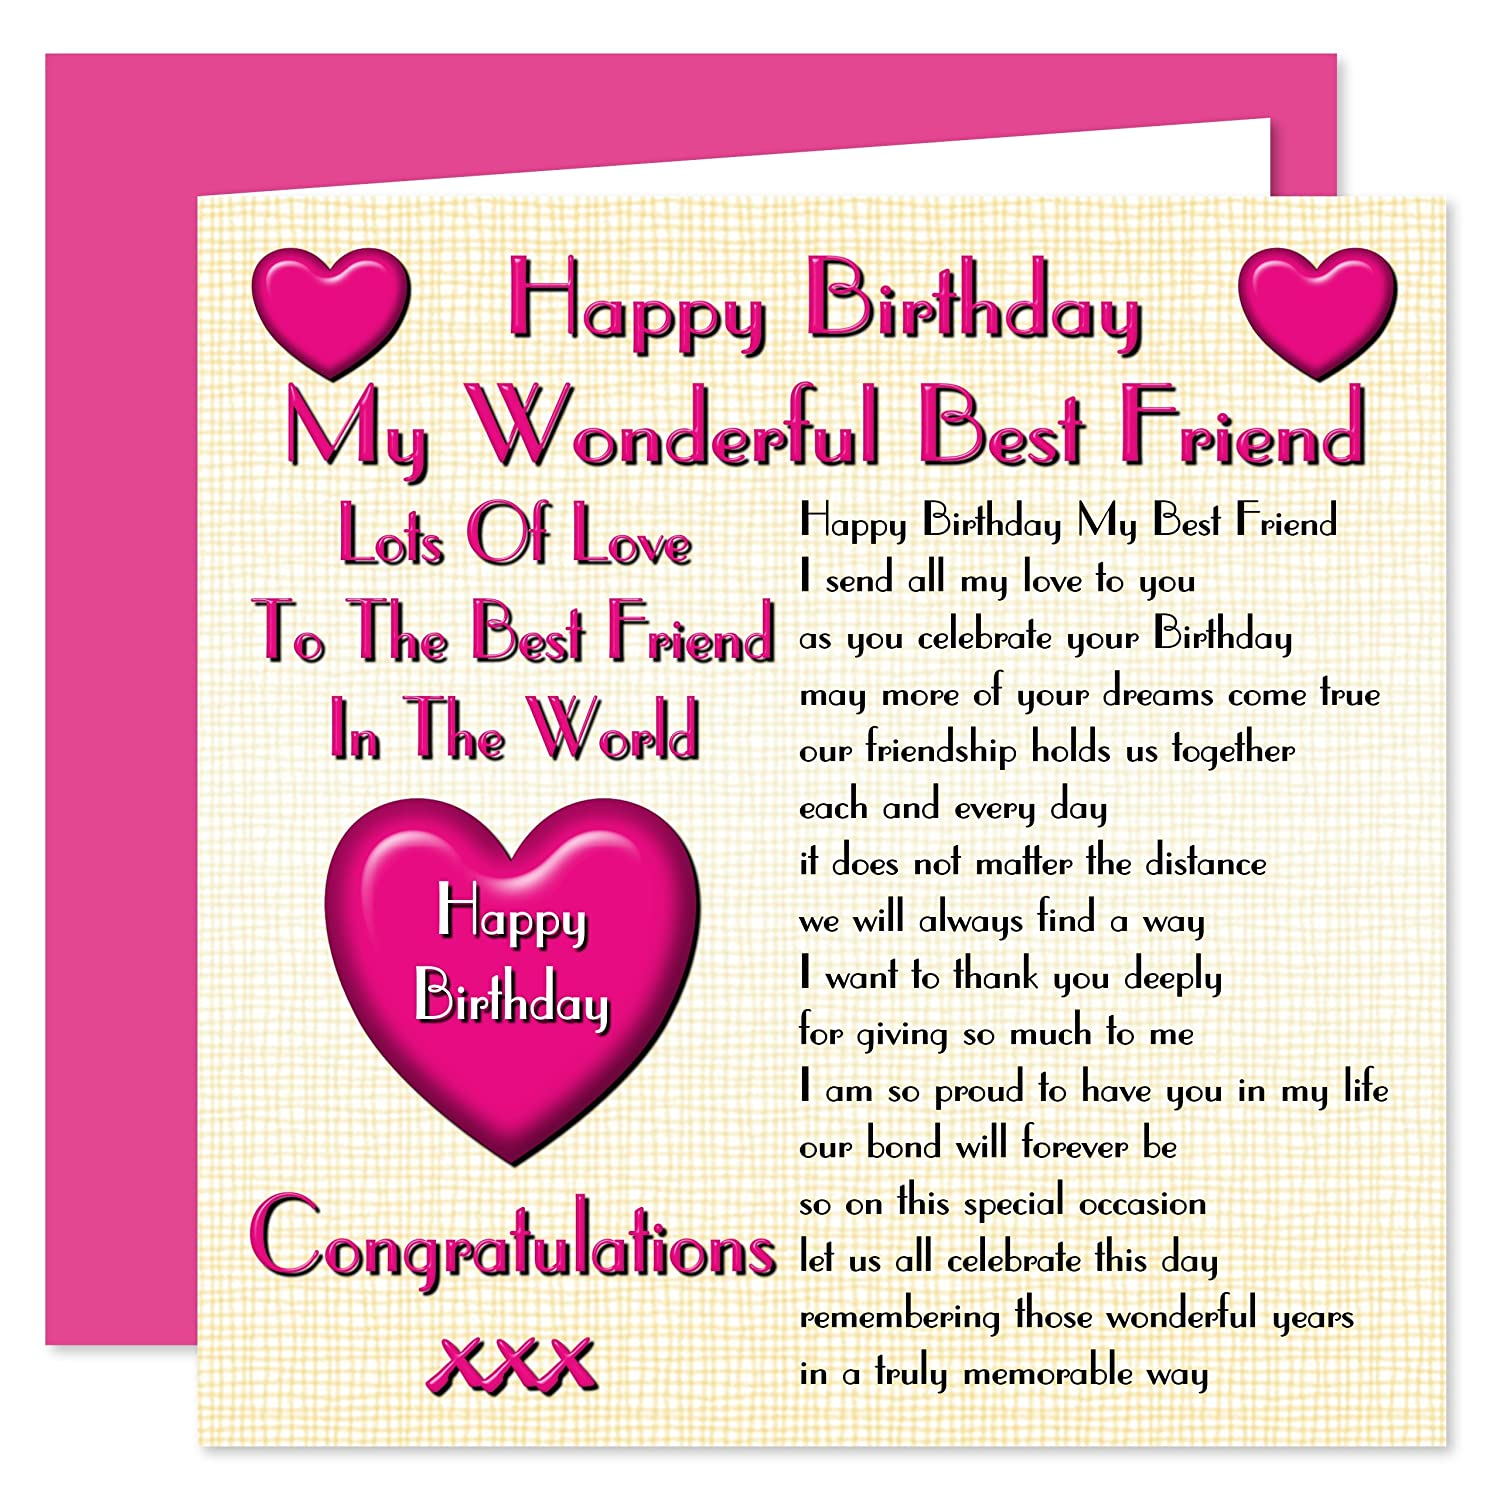 Happy Birthday My Friend.Best Friend Happy Birthday Card Lots Of Love To The Best Friend In The World